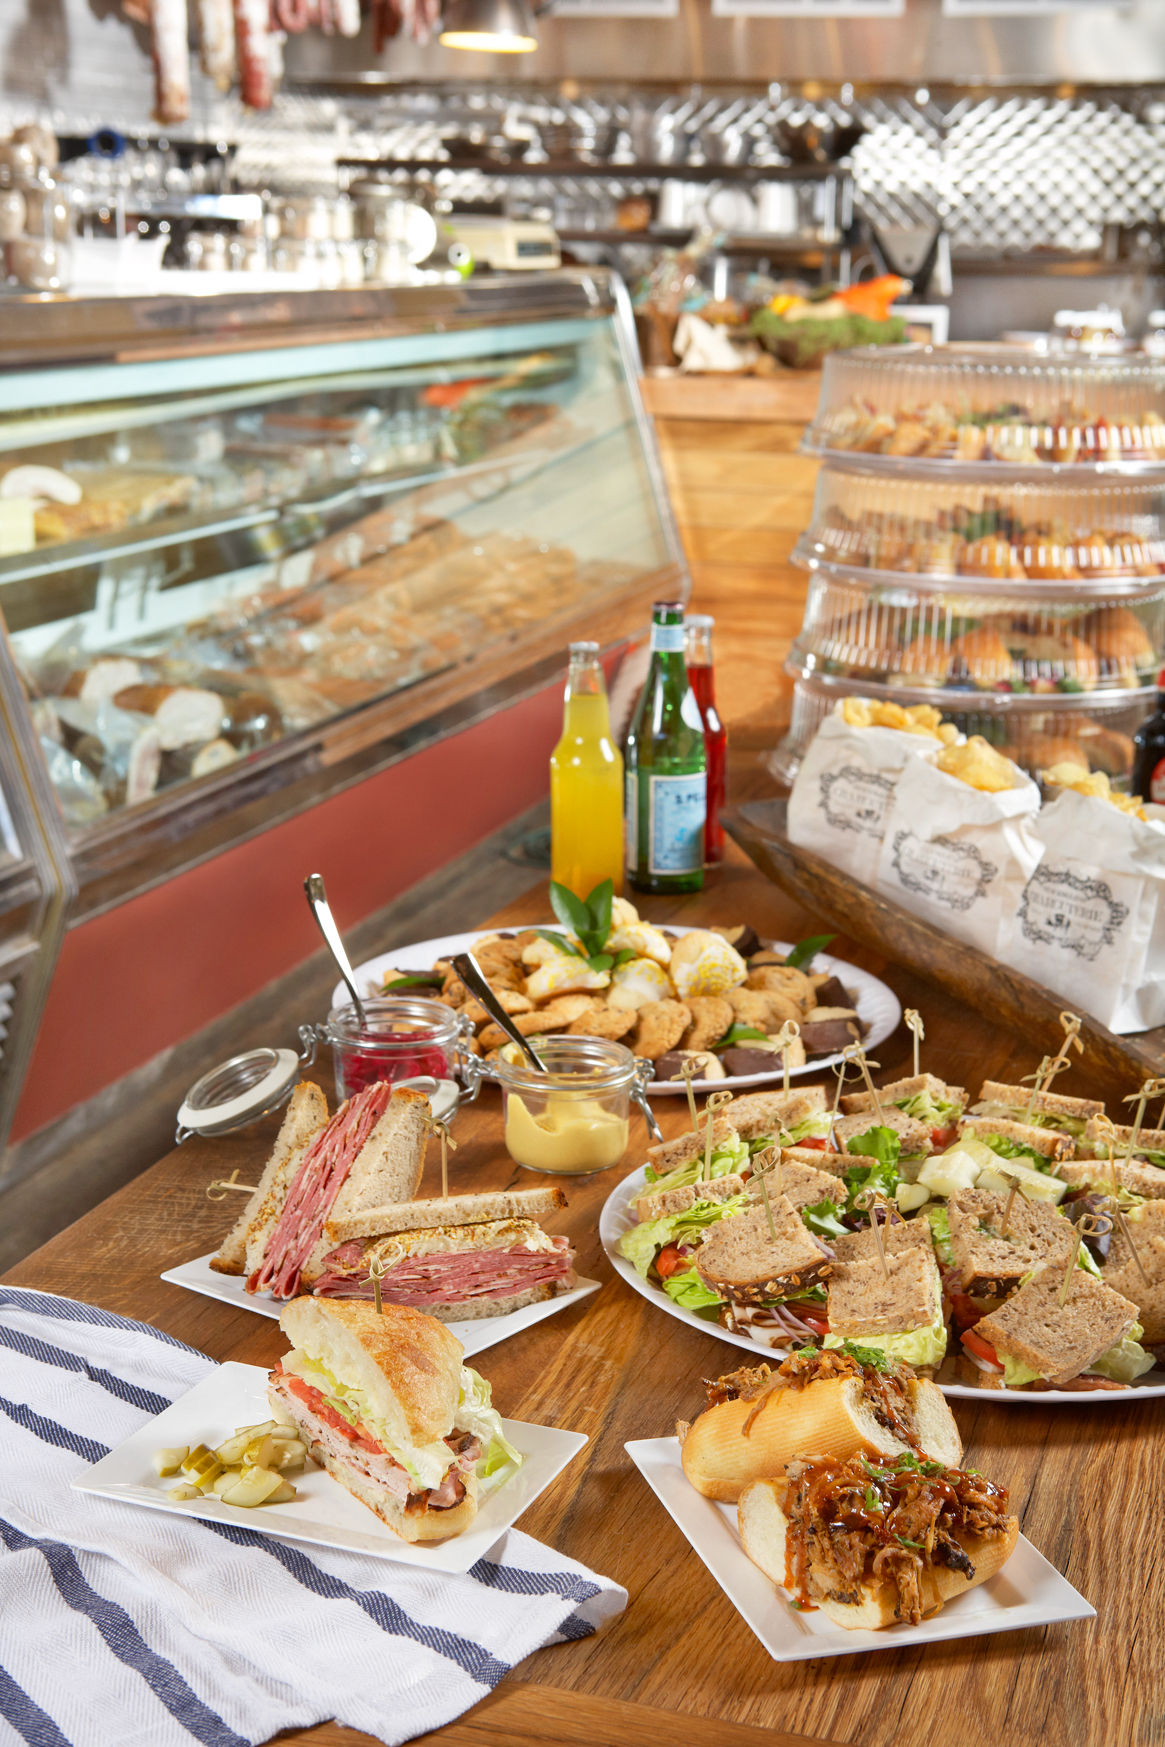 Moody's Delicatessen & Provisions caters with housemade charcuterie.